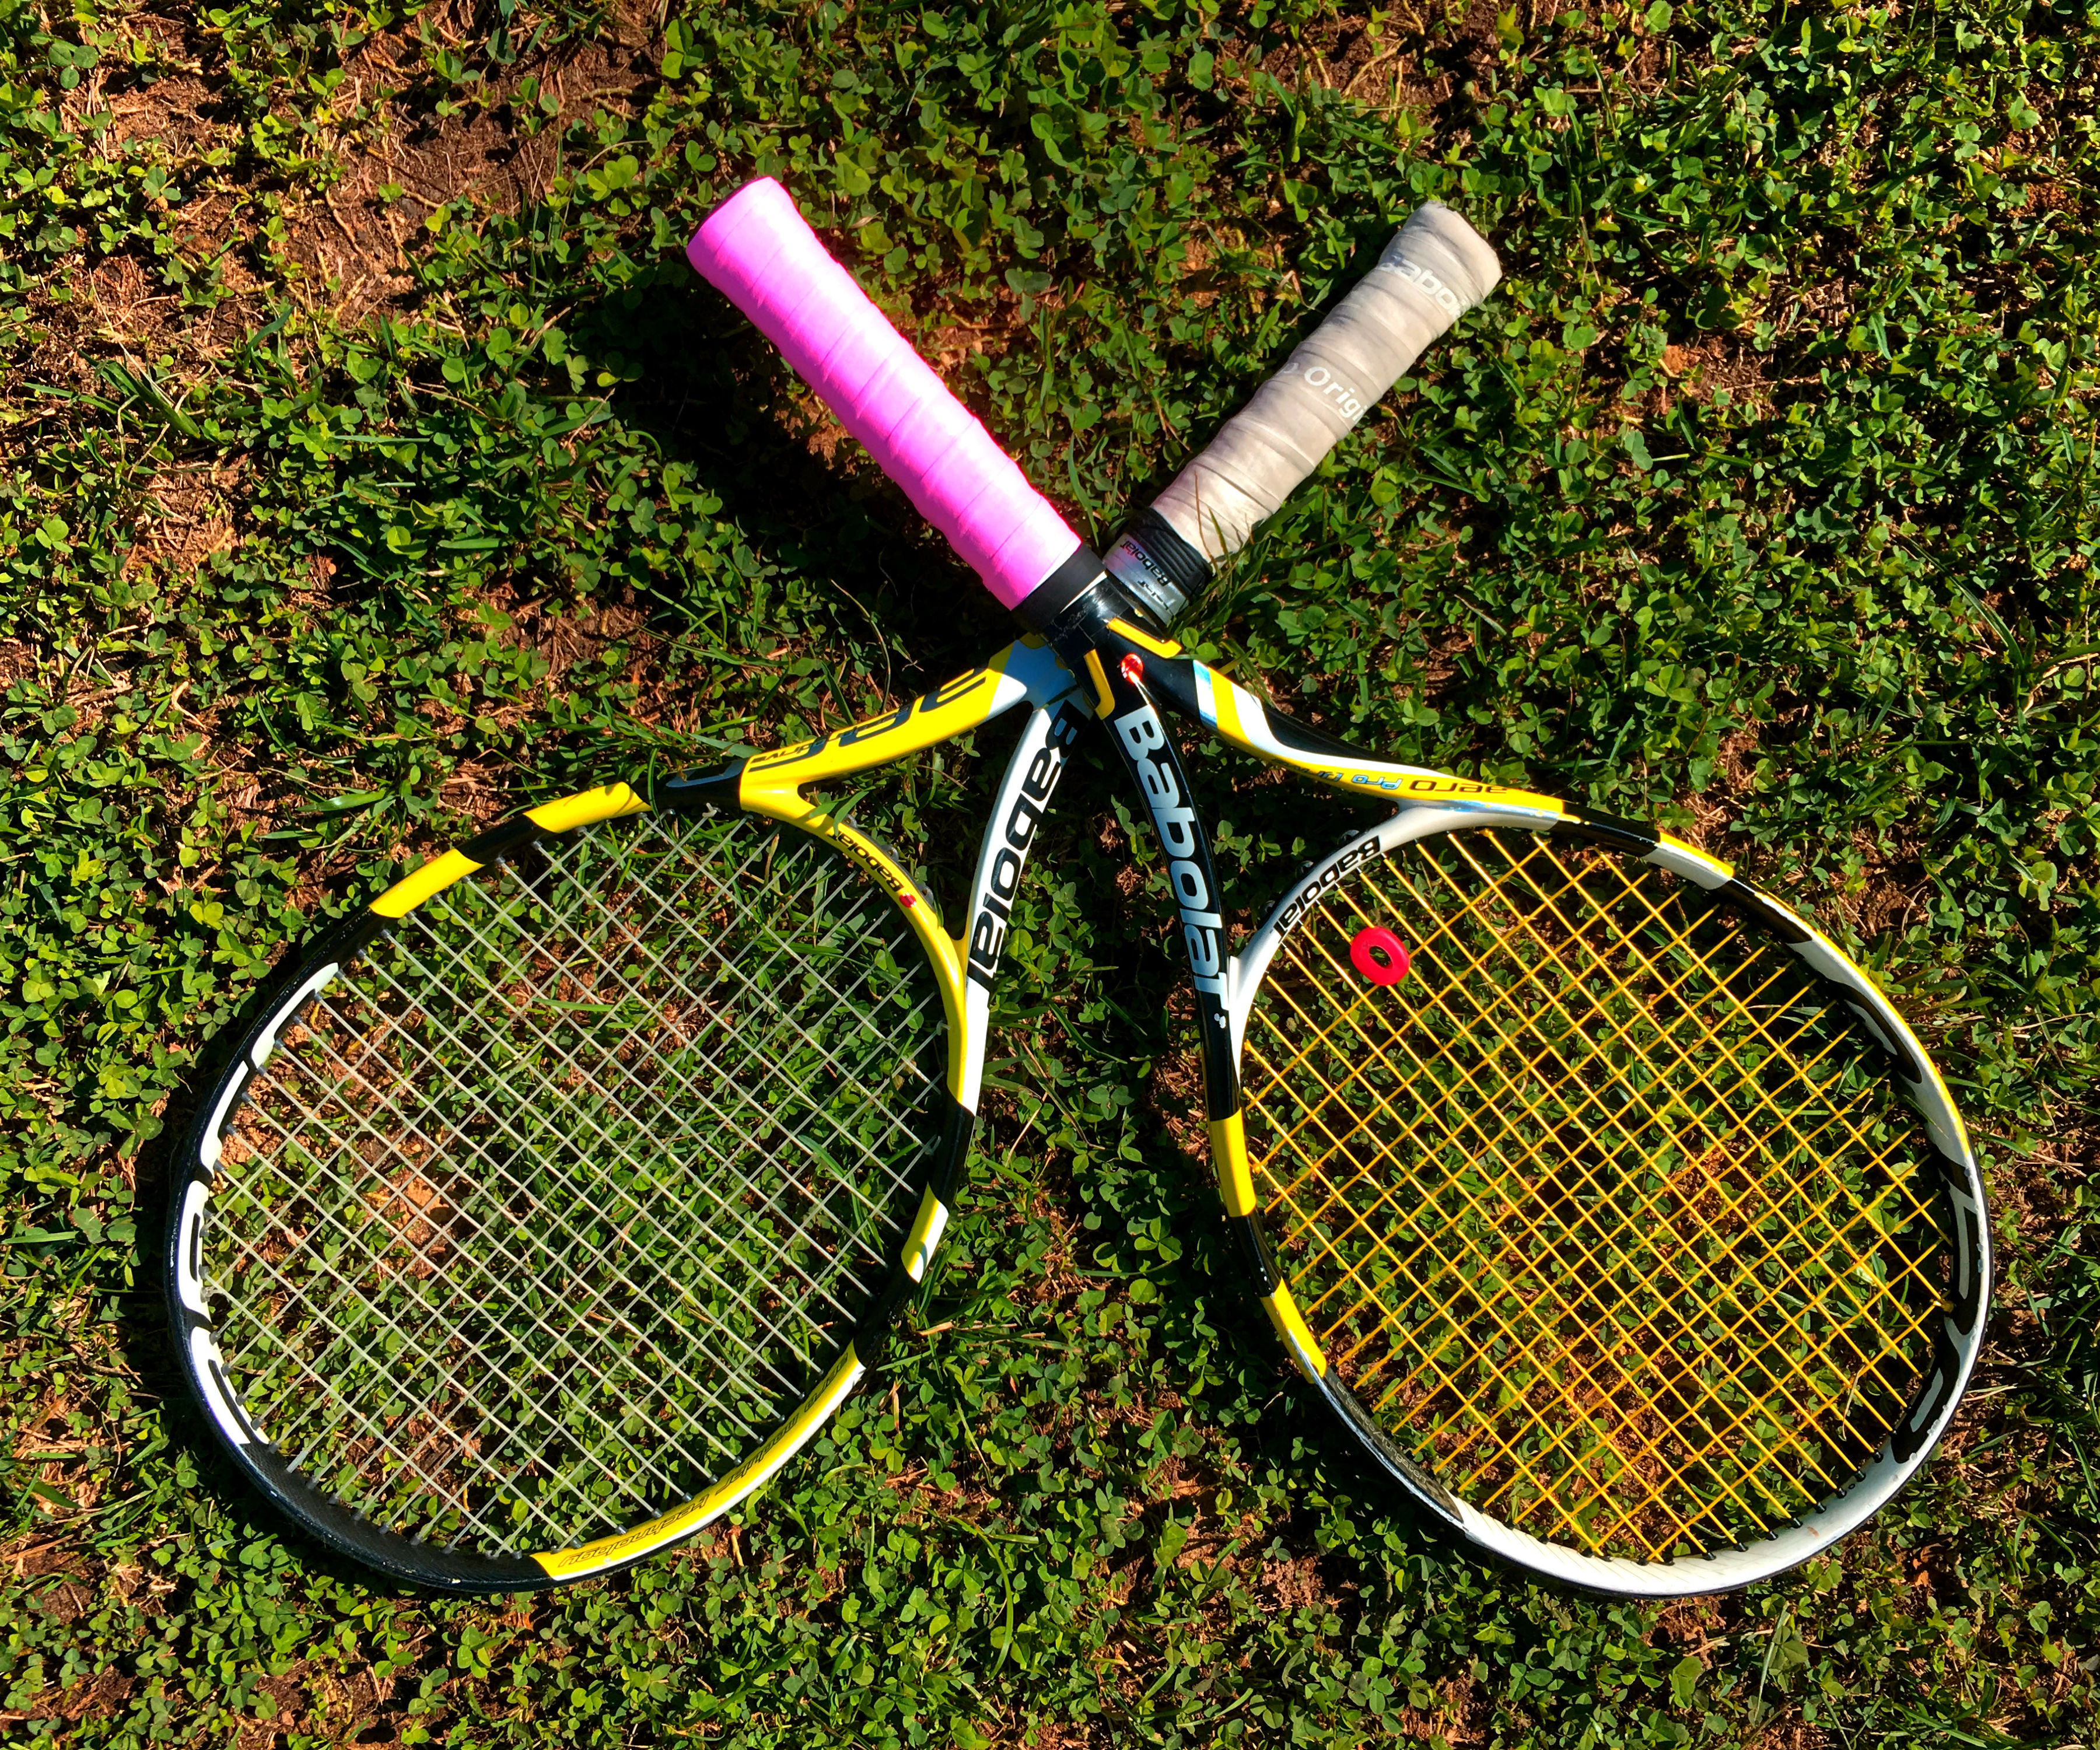 wrap an overgrip on a tennis racket 8 steps (with pictures) badminton racket sweet spot five mental toughness phrases to help